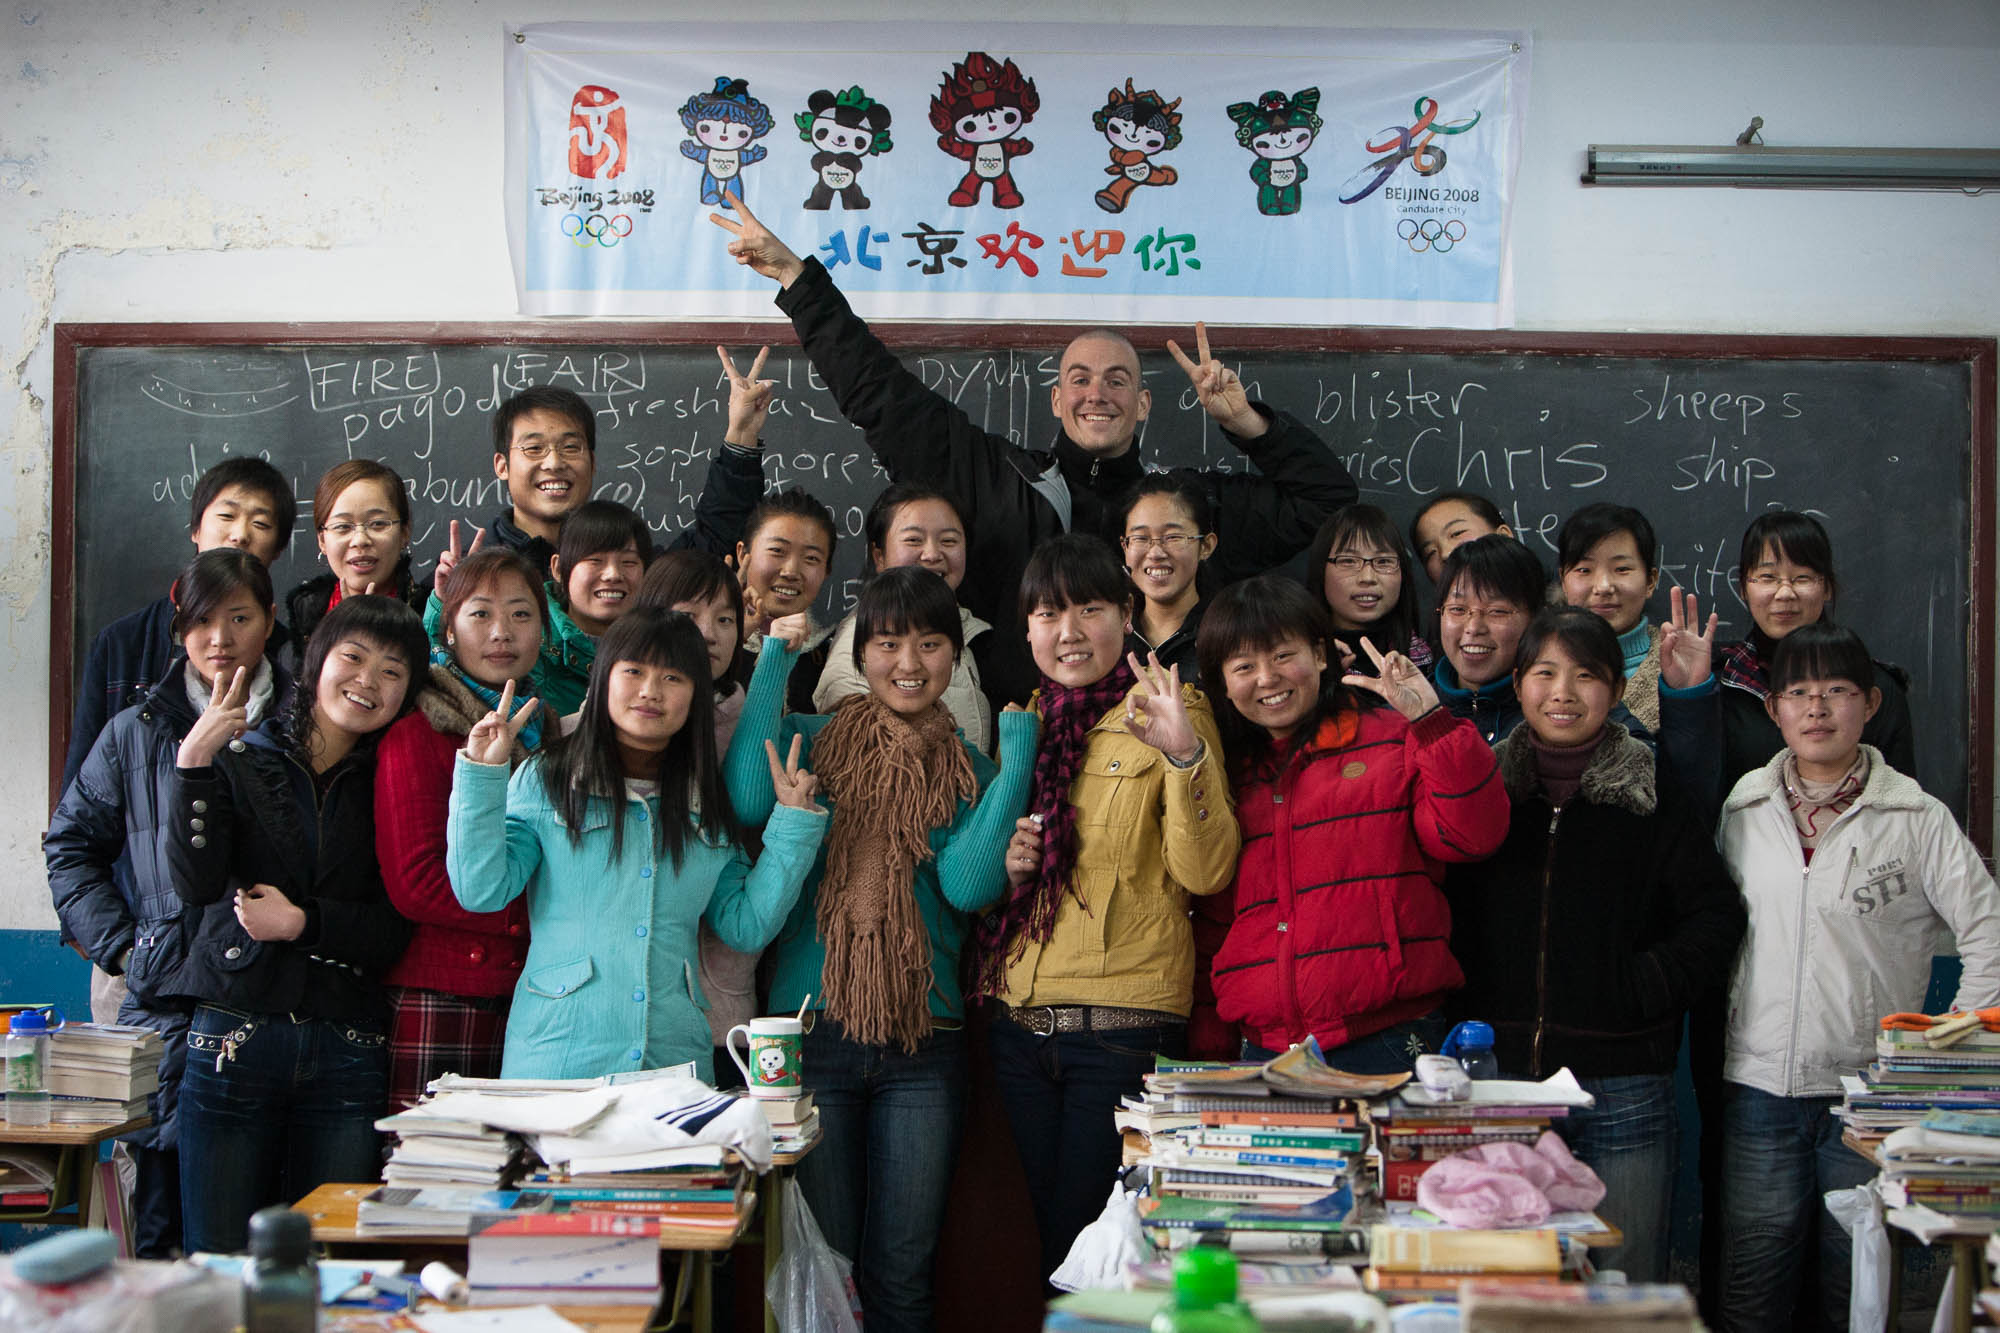 This English class in Dingzhou took me in